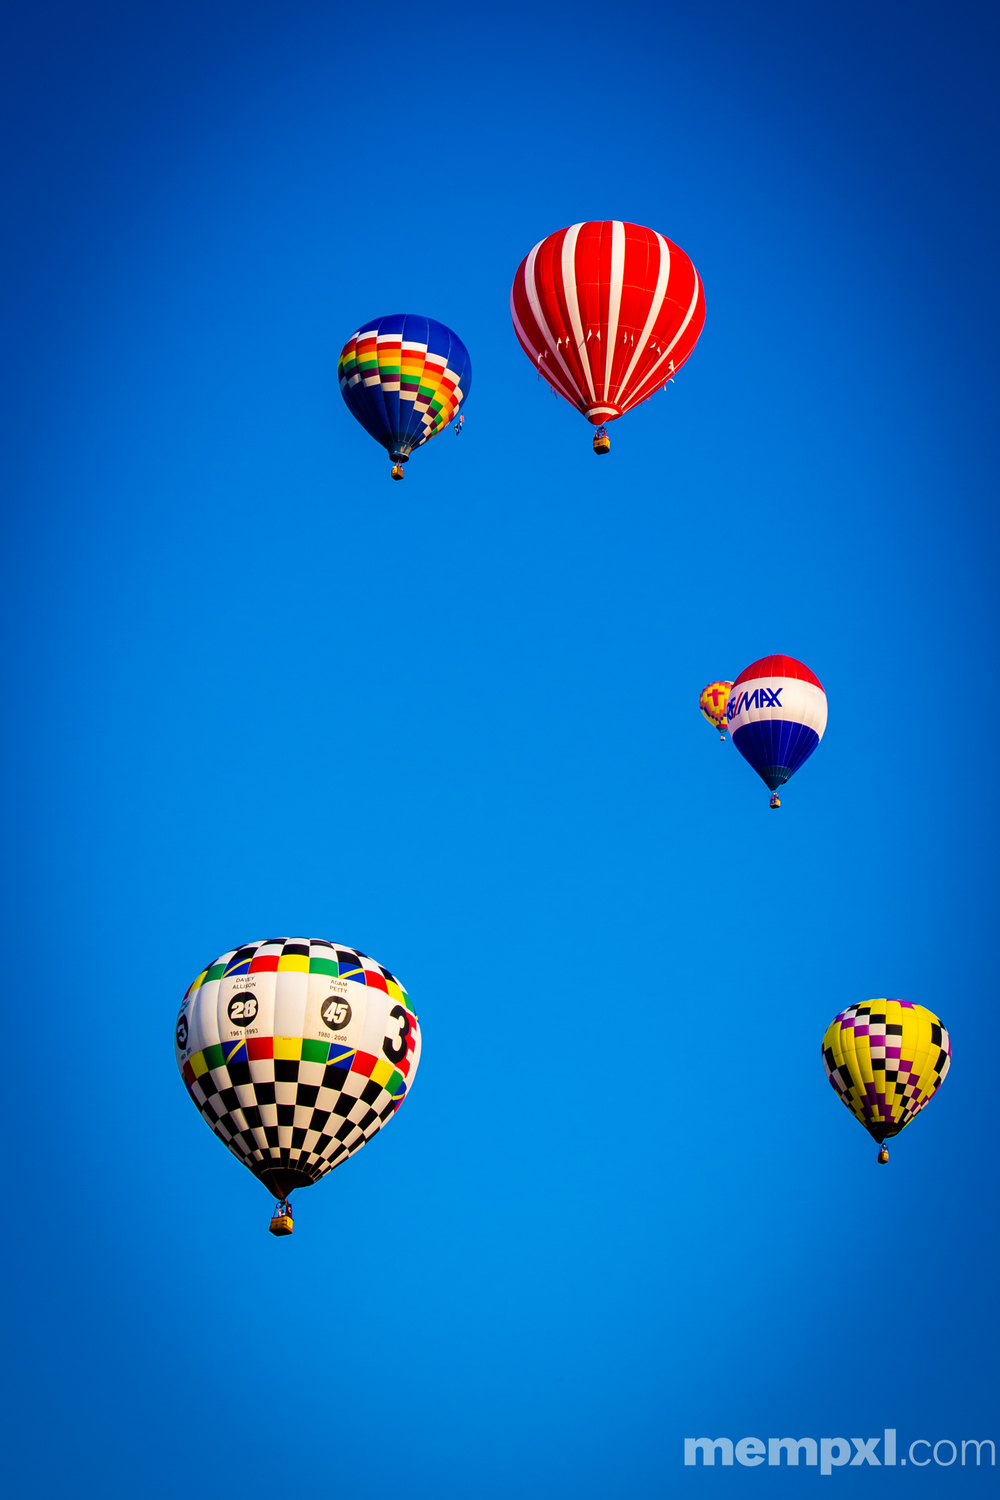 Hot Air Baloons 2014 WM.jpg